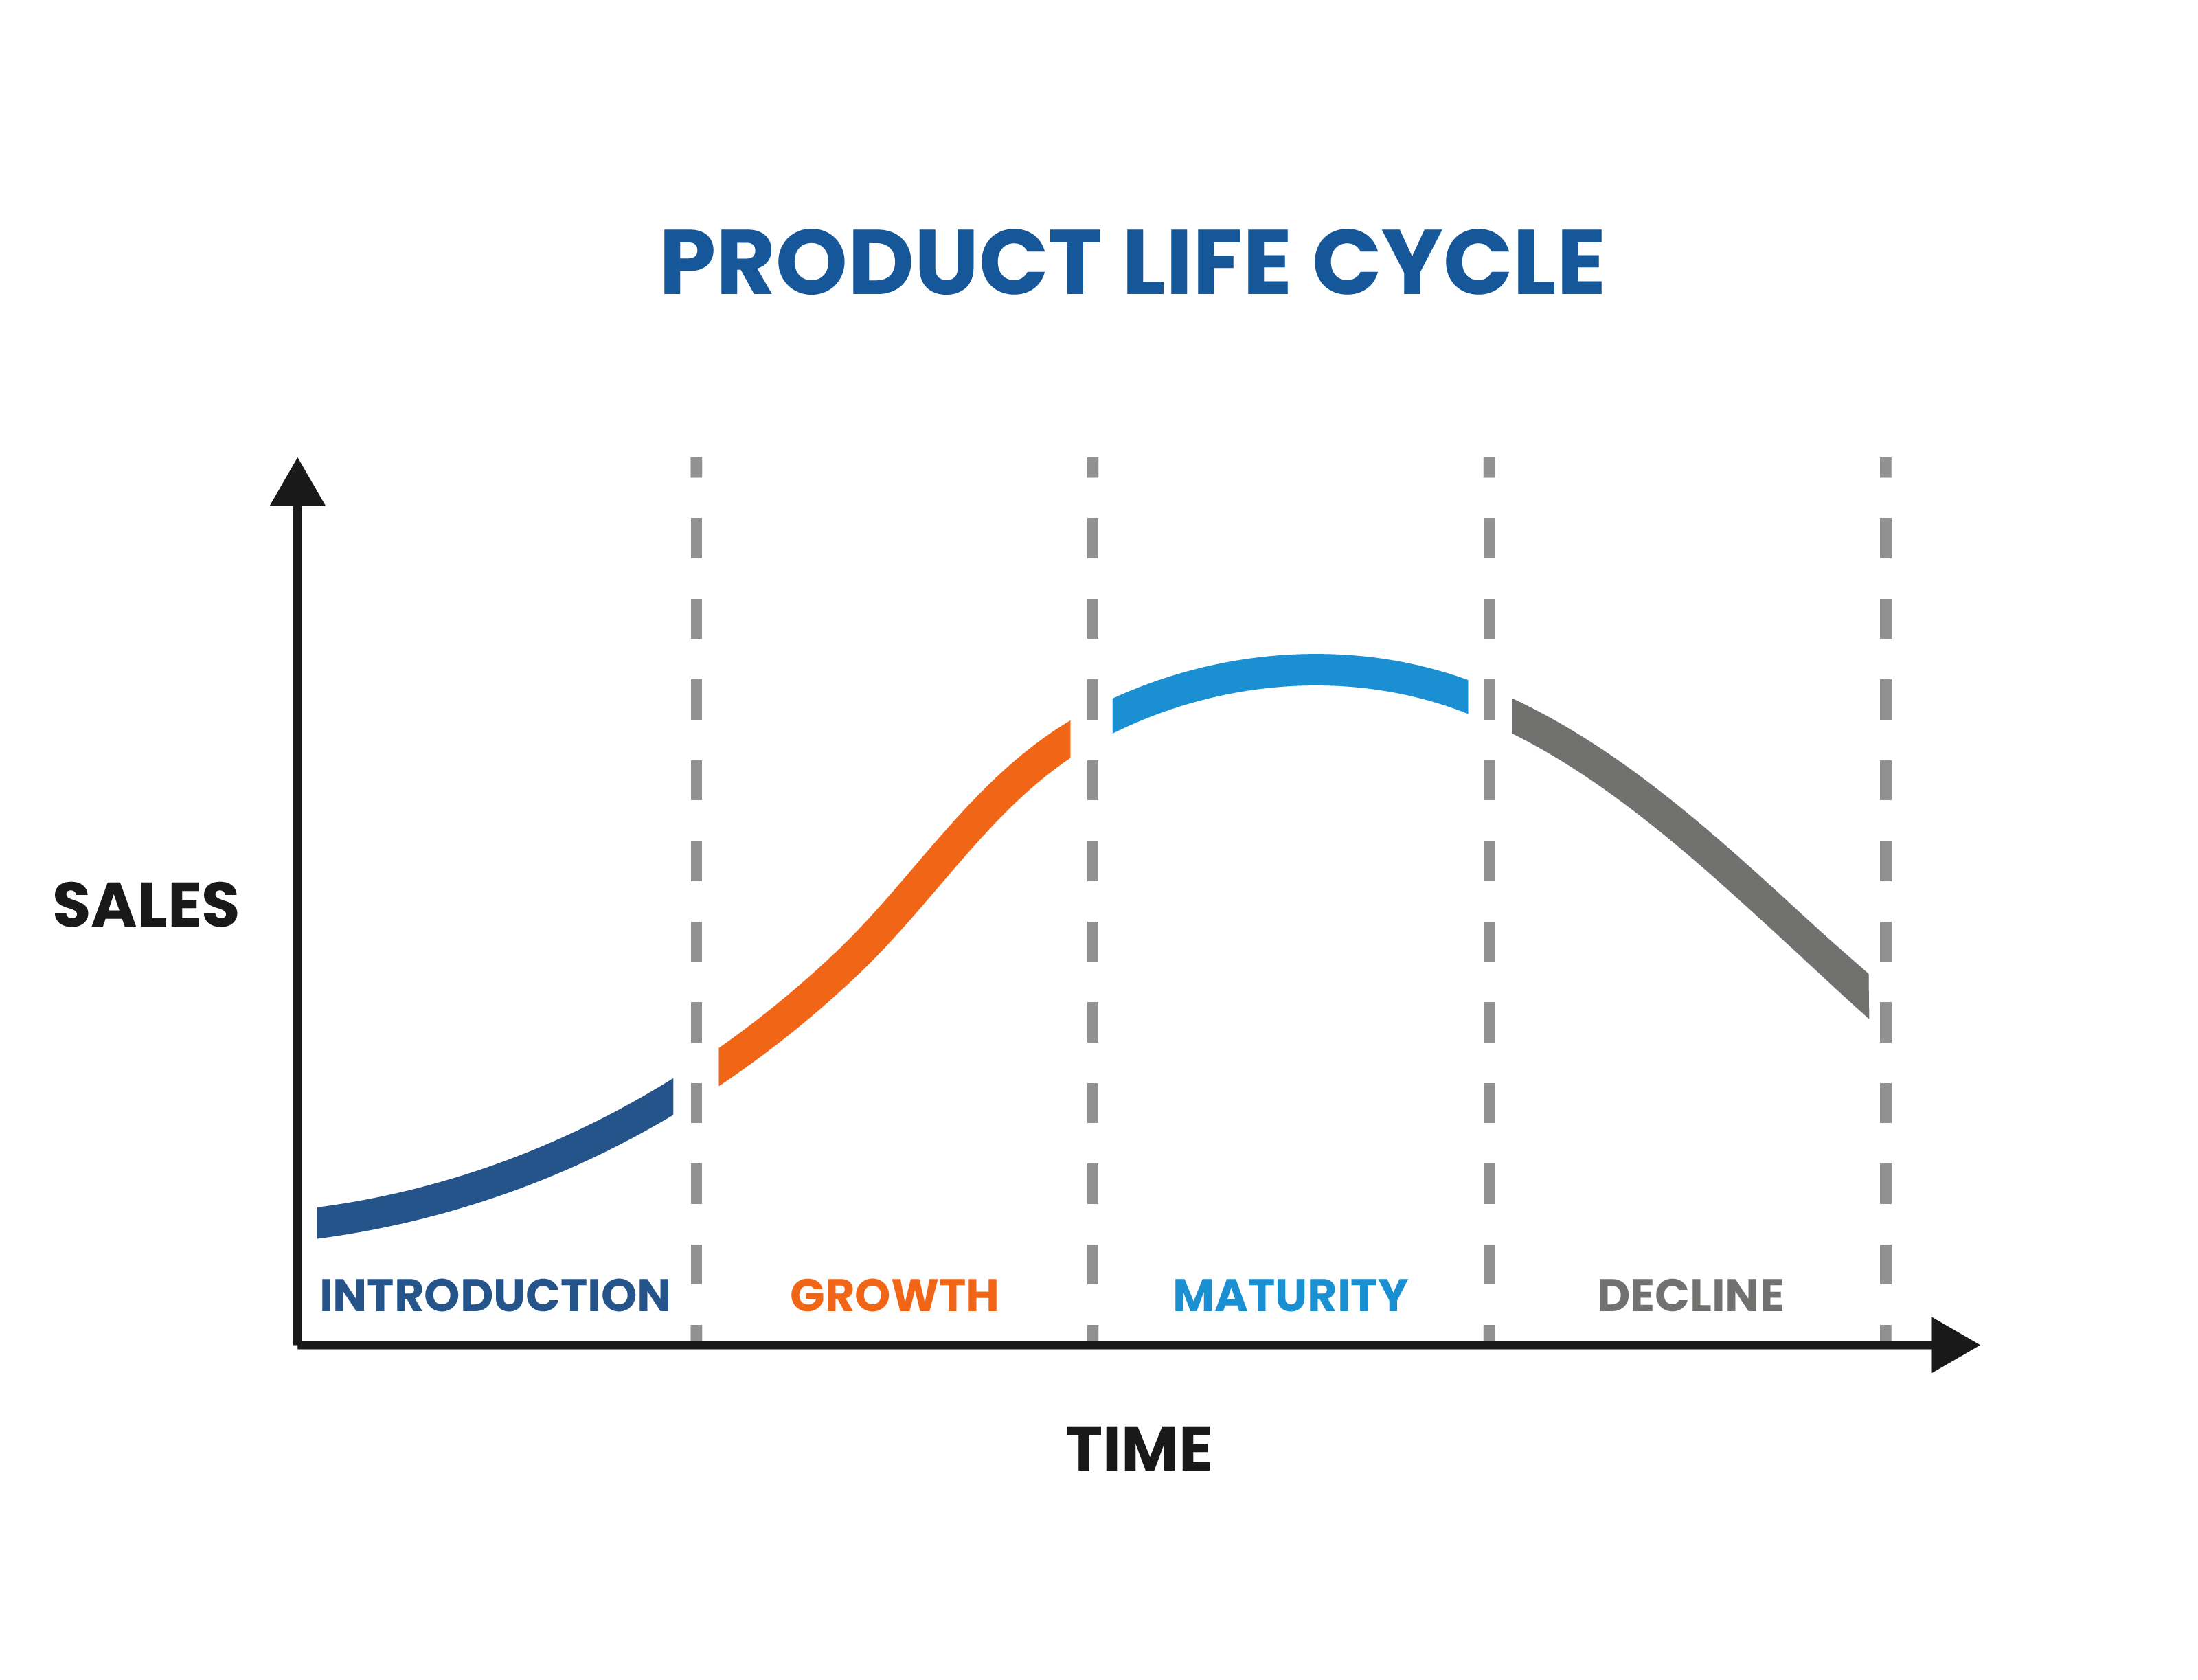 How Product Life Cycle Looks?